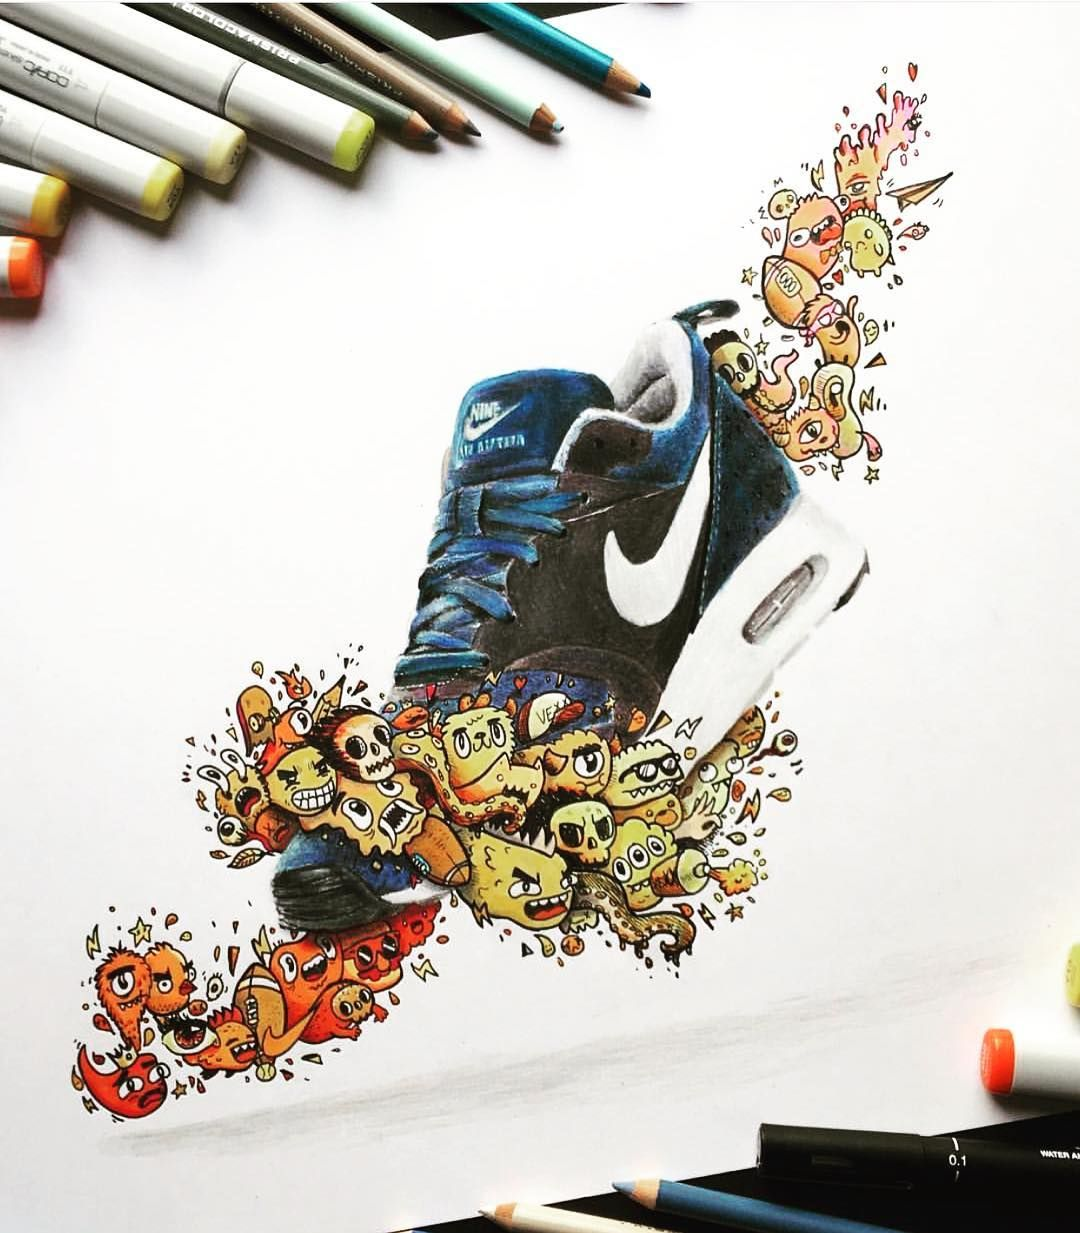 528398968764088927 on Graffiti Sketches Coloring